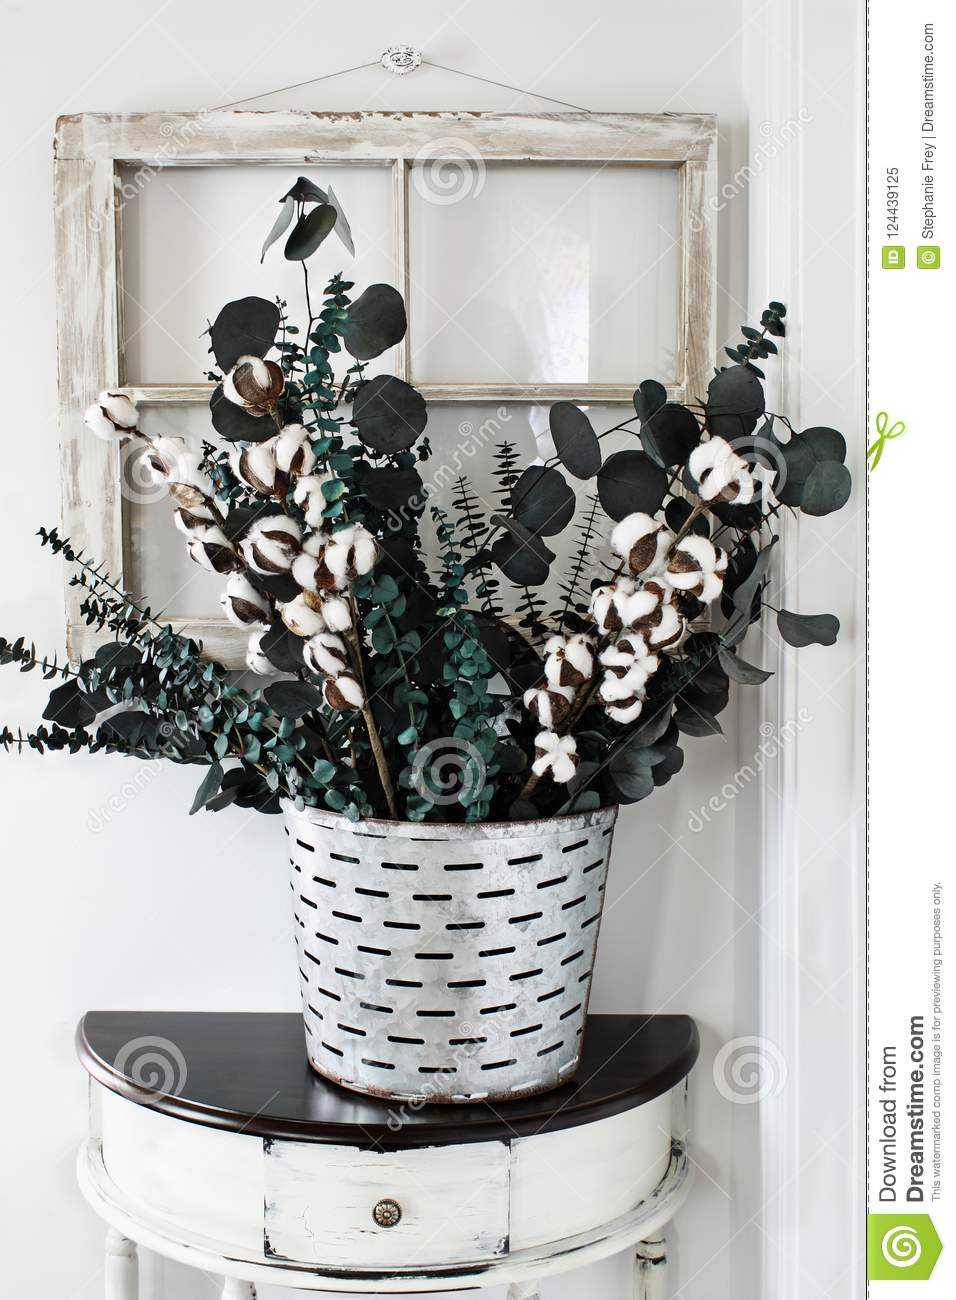 137 Cotton Stem Vase Photos Free Royalty Free Stock Photos From Dreamstime